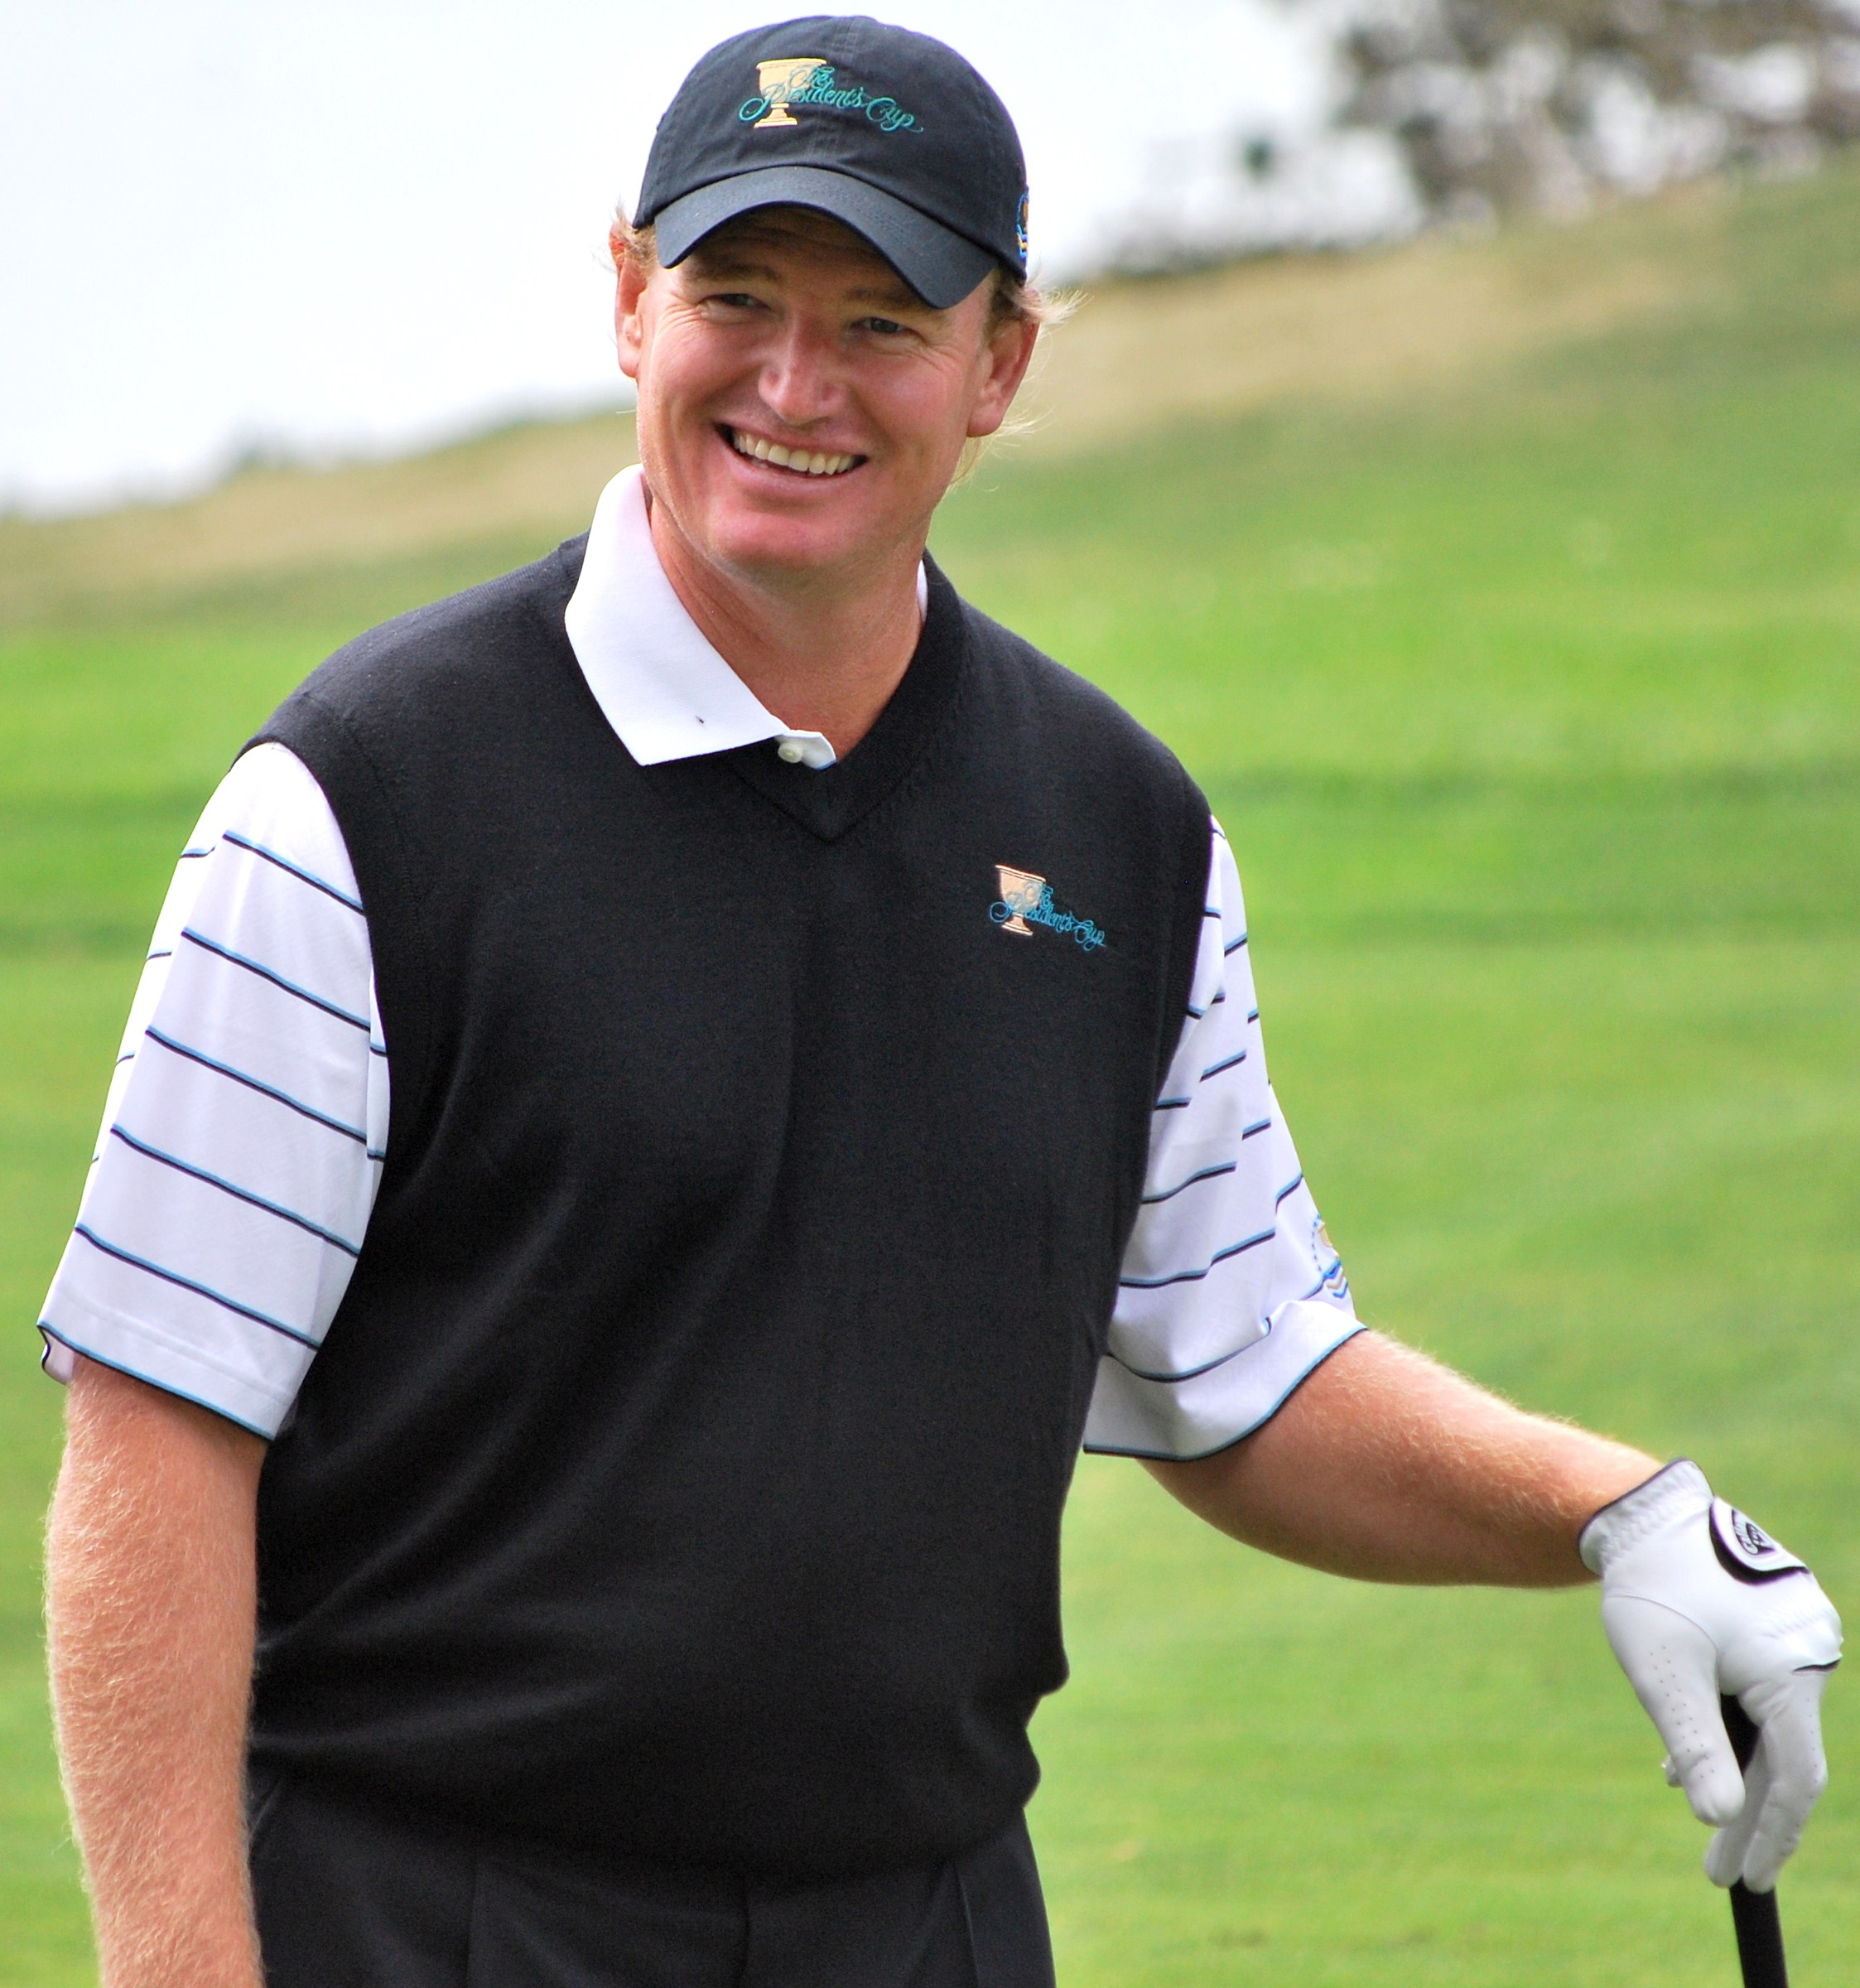 Photo Ernie Els cropped